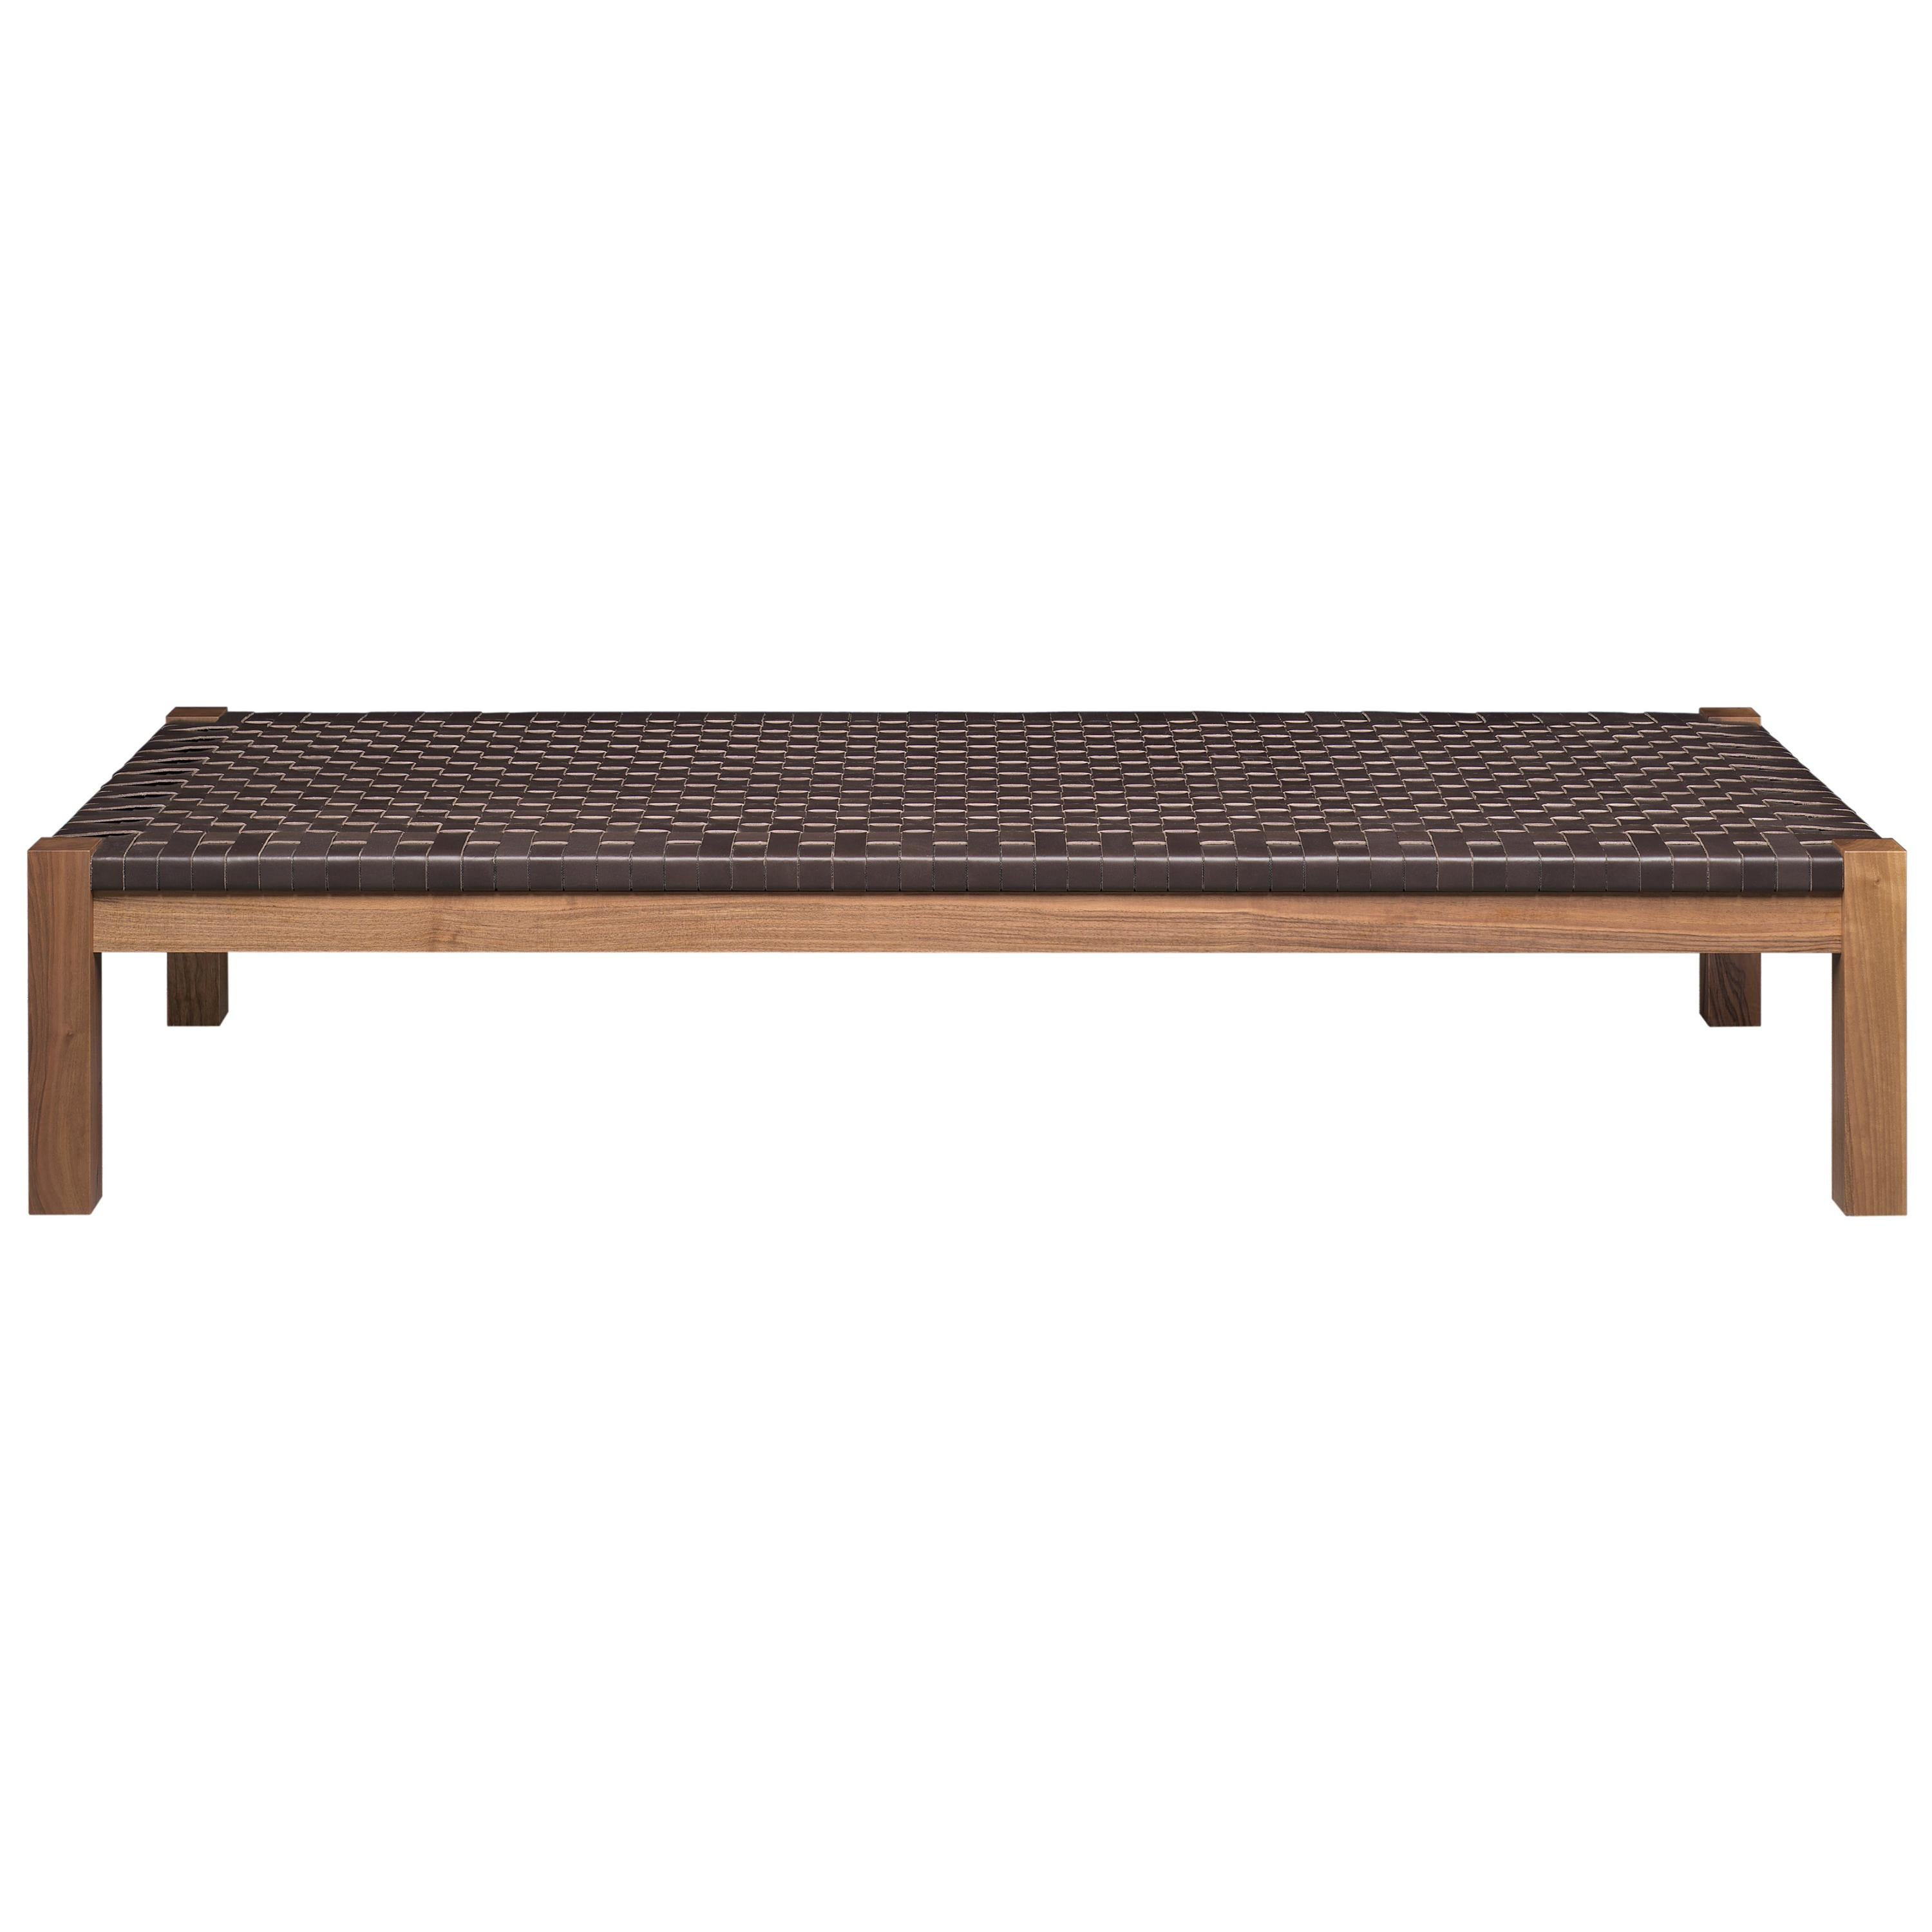 e15 Theban Daybed with Walnut Waxed Base by Ferdinand Kramer